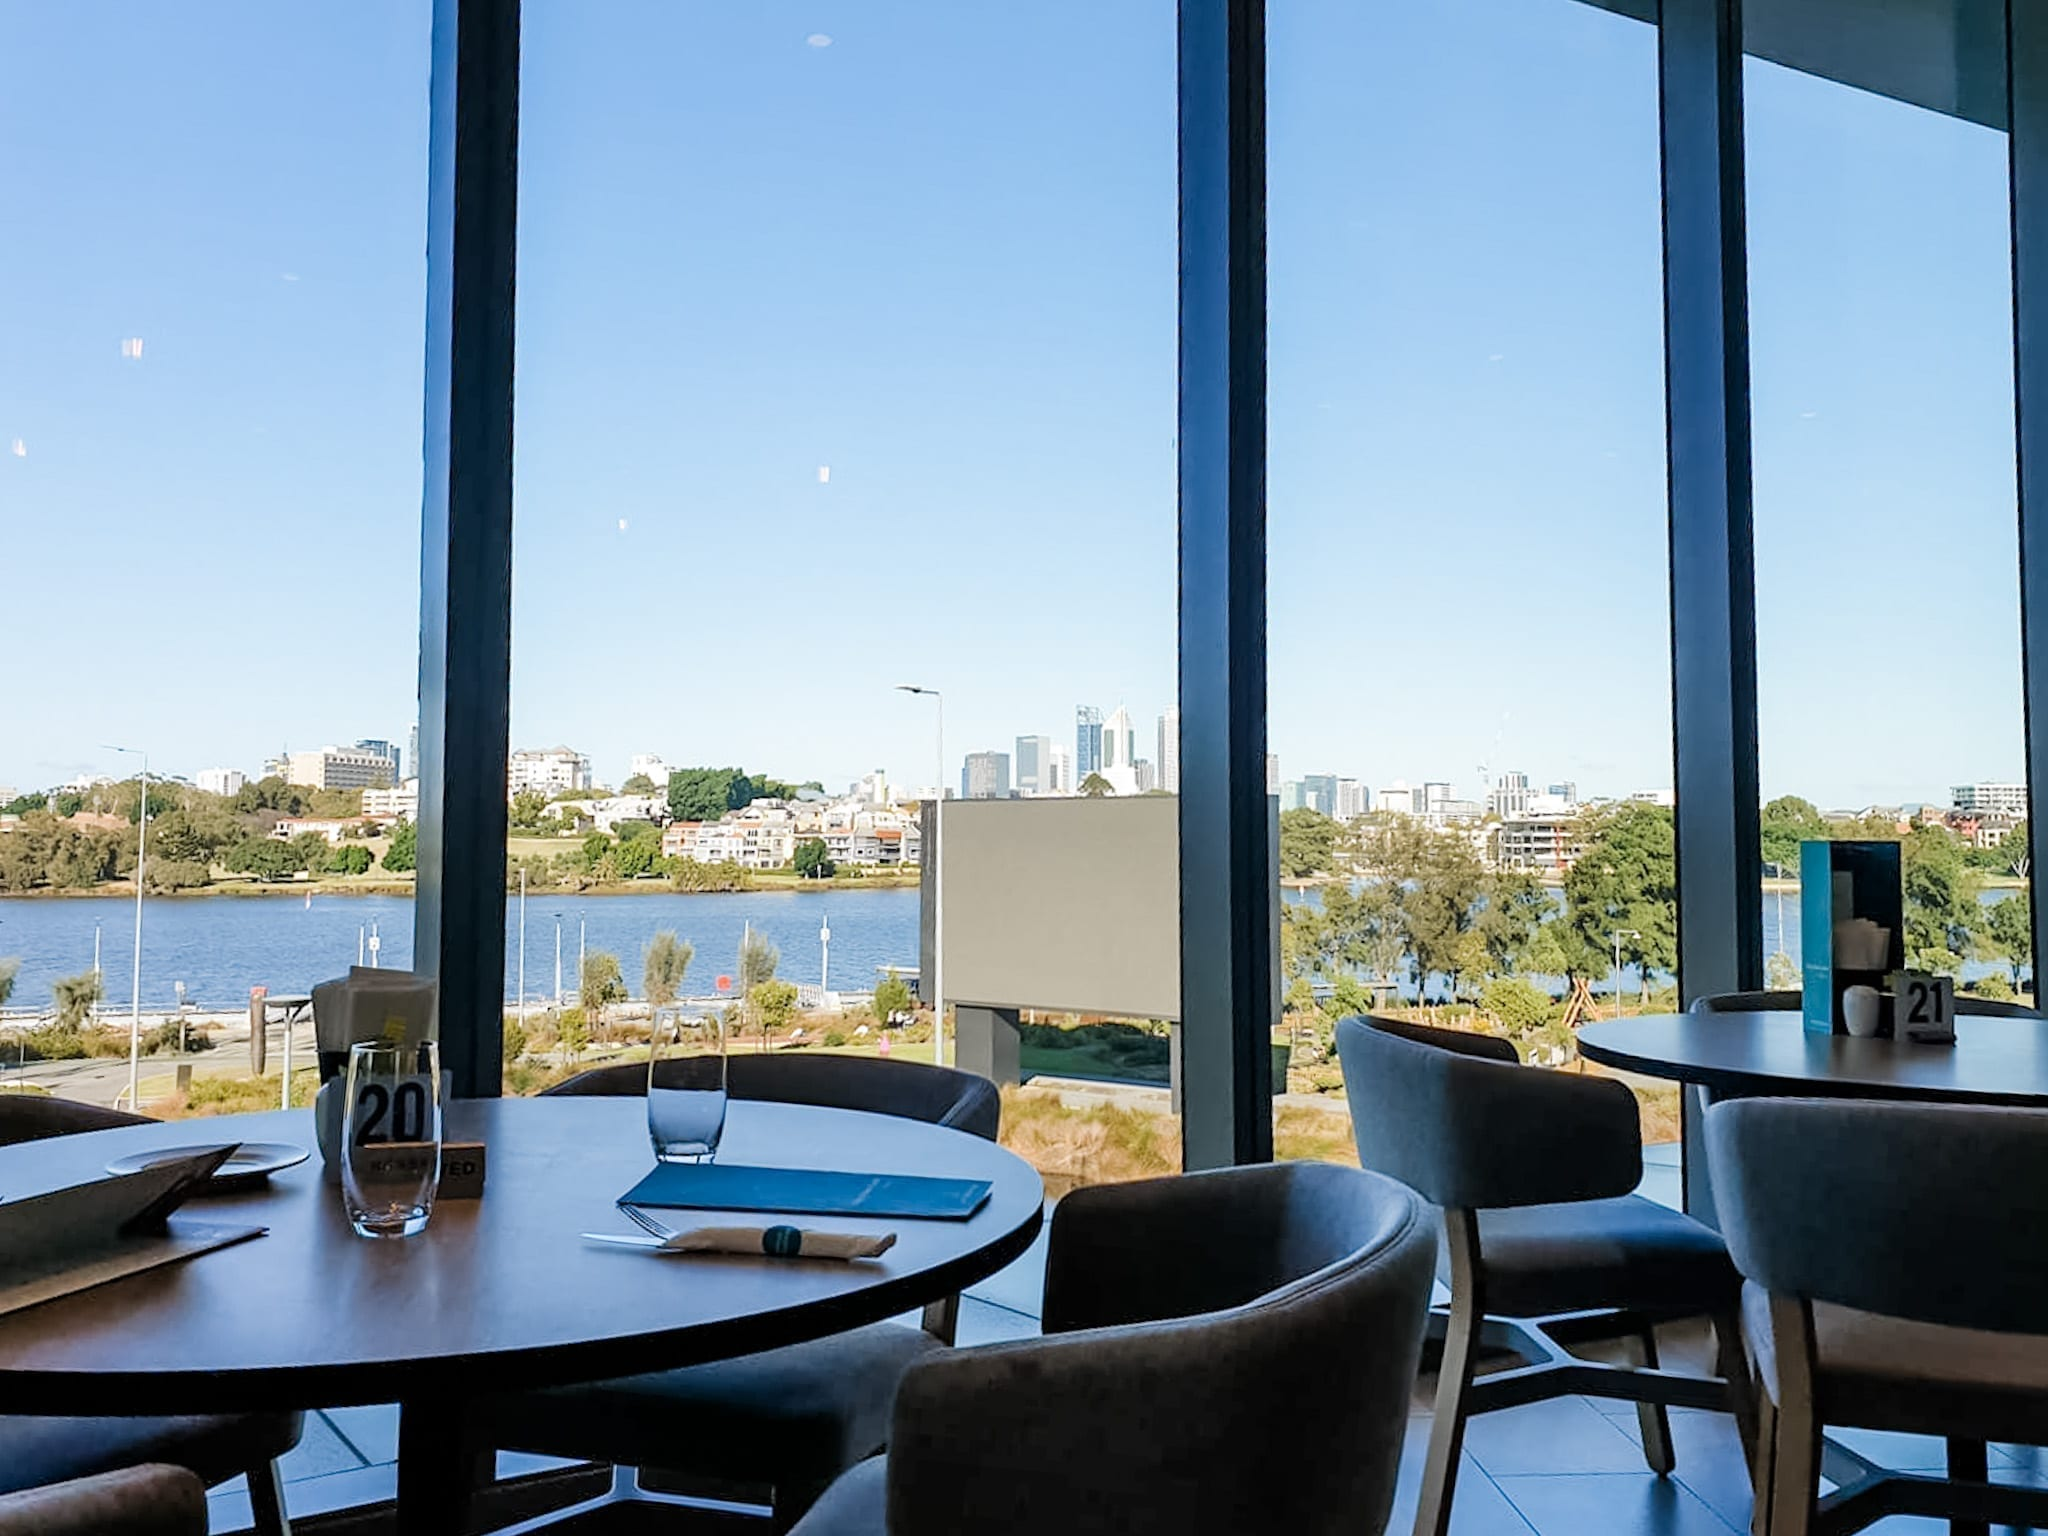 City View Cafe at Optus Stadium